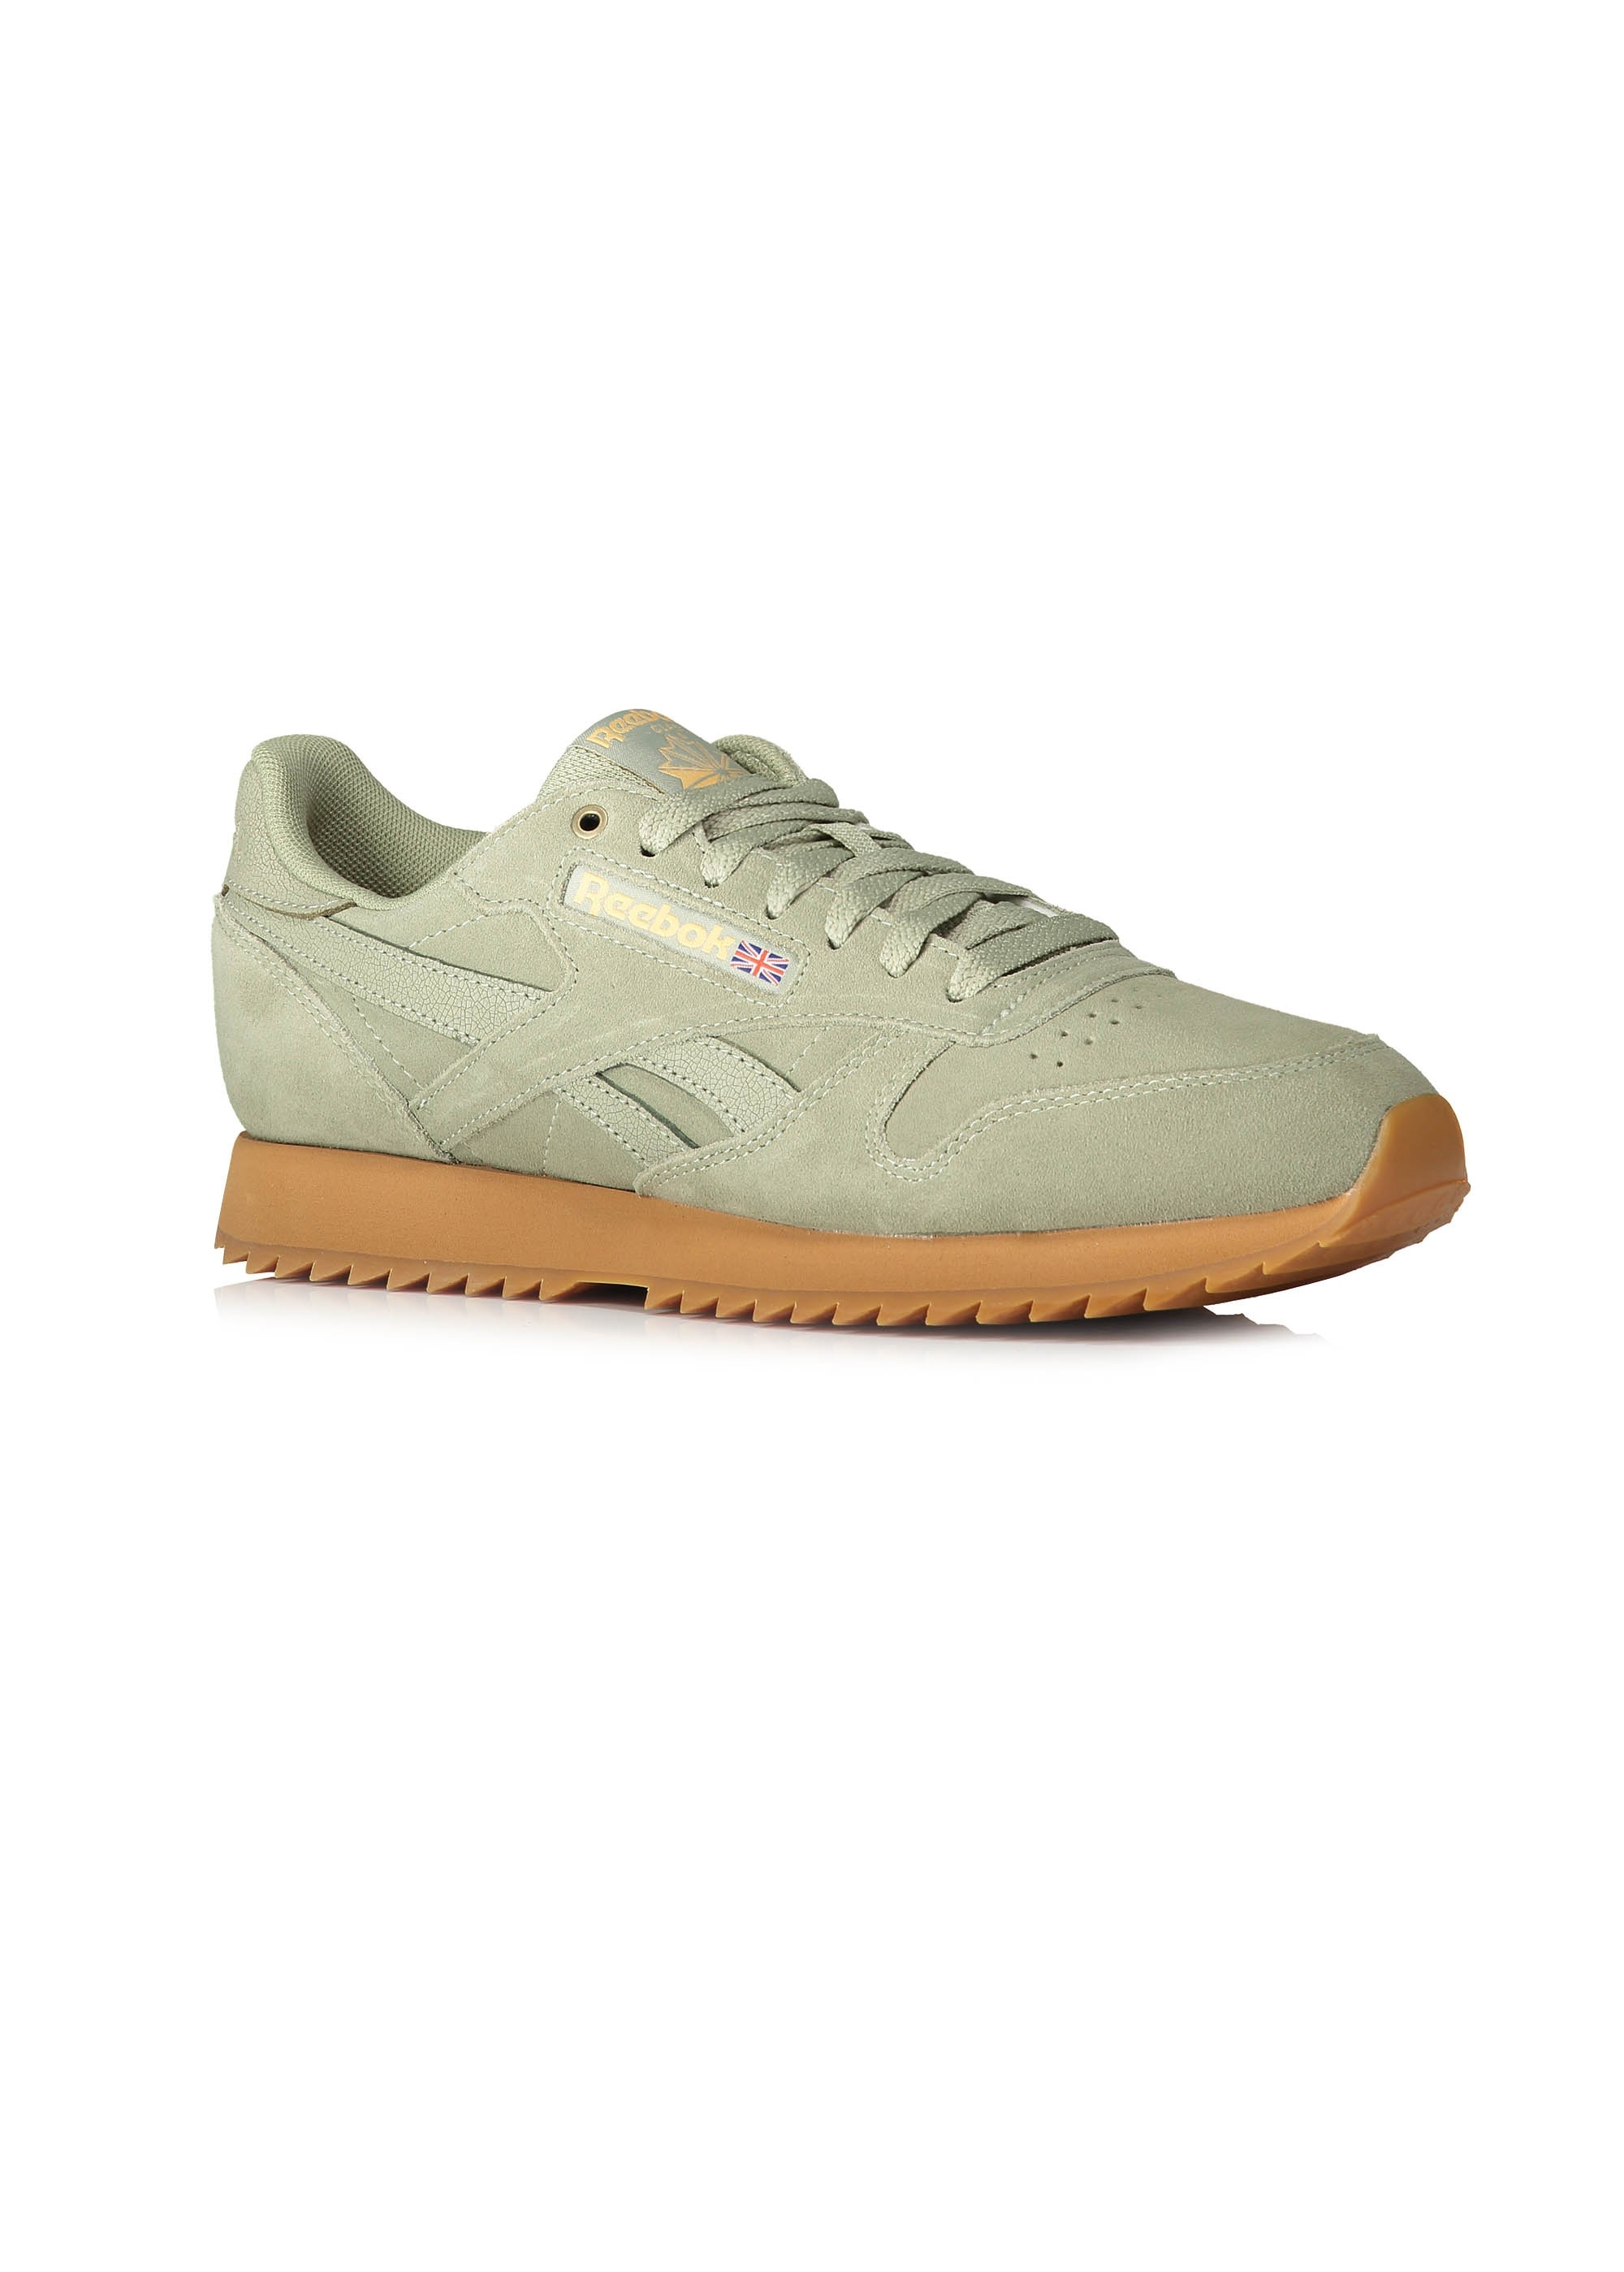 adc2f31a28c Reebok x Montana Cans CL Leather - Manilla Light - Trainers from ...